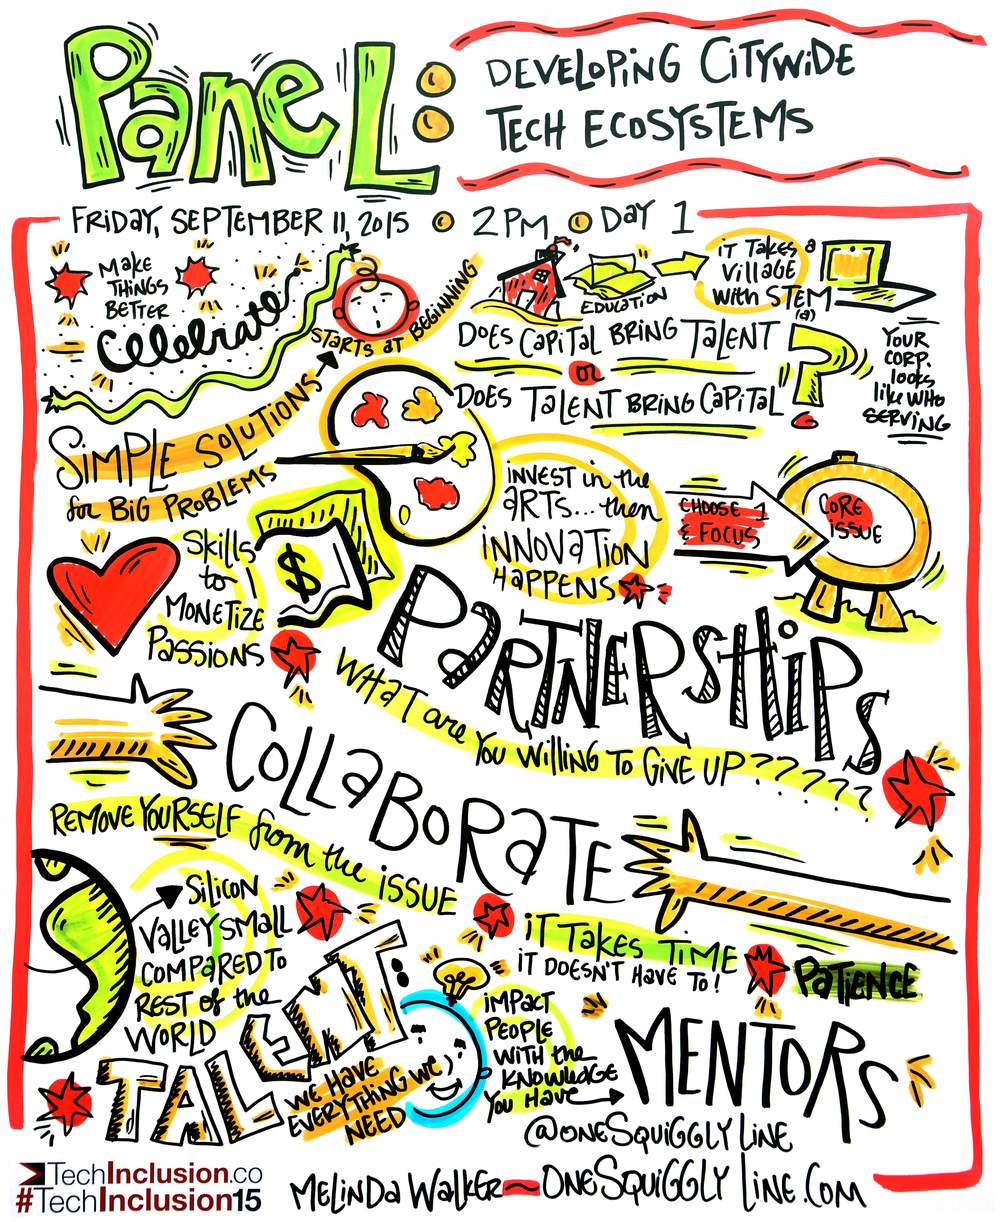 VisualNotes_GraphicRecording_TechInclusion_OneSquigglyLine